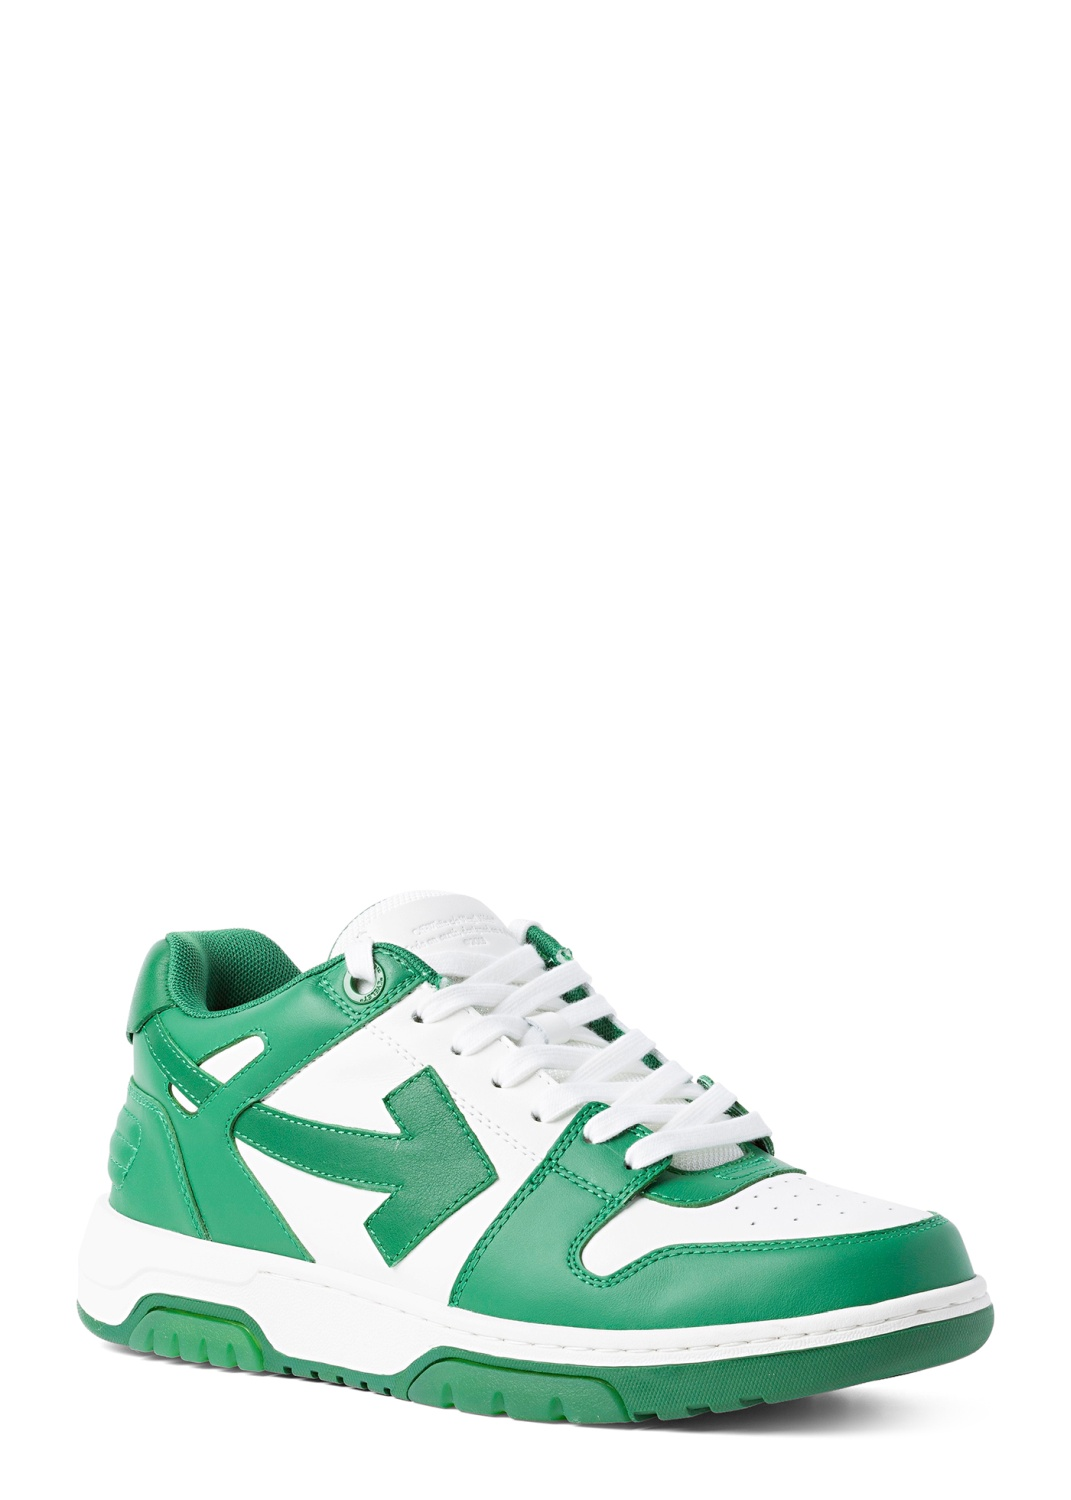 OUT OF OFFICE CALF LEATHER WHITE GREEN image number 1